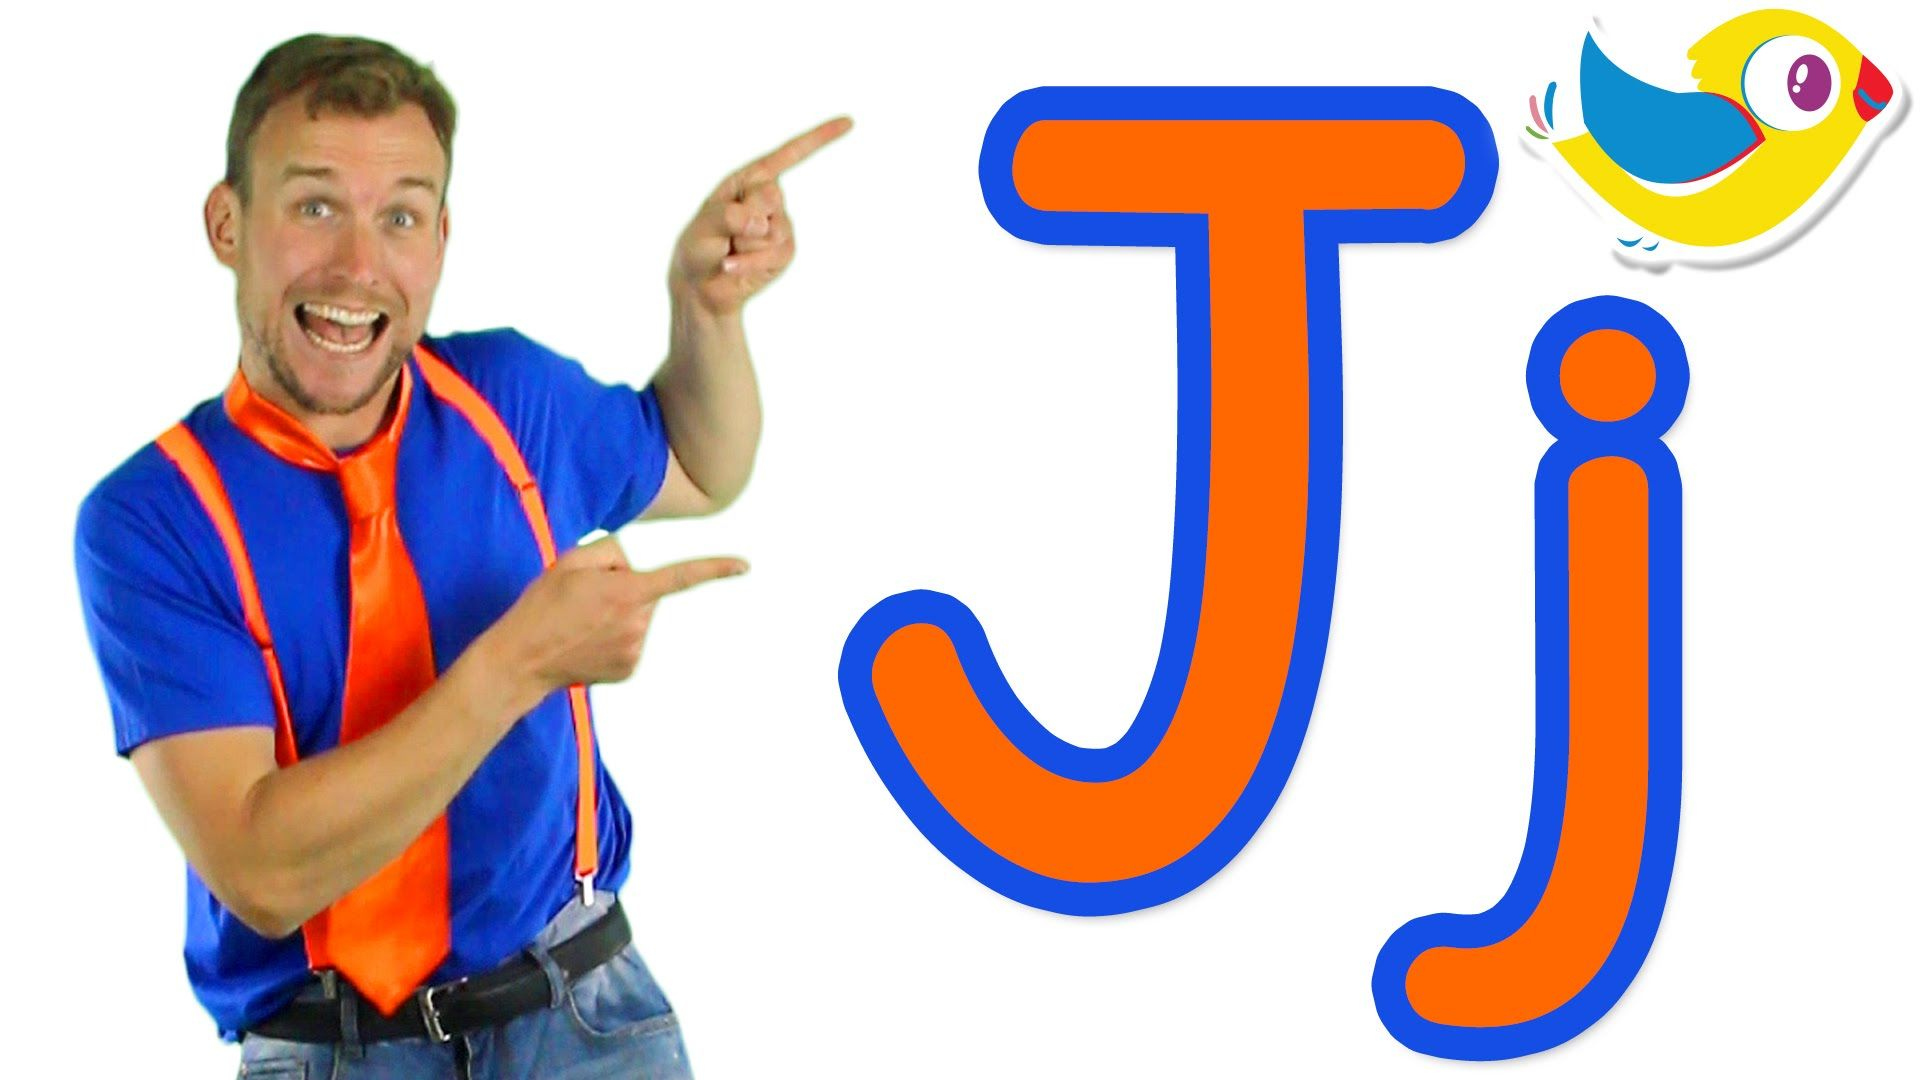 The Letter J Song let's learn the alphabet! Here's